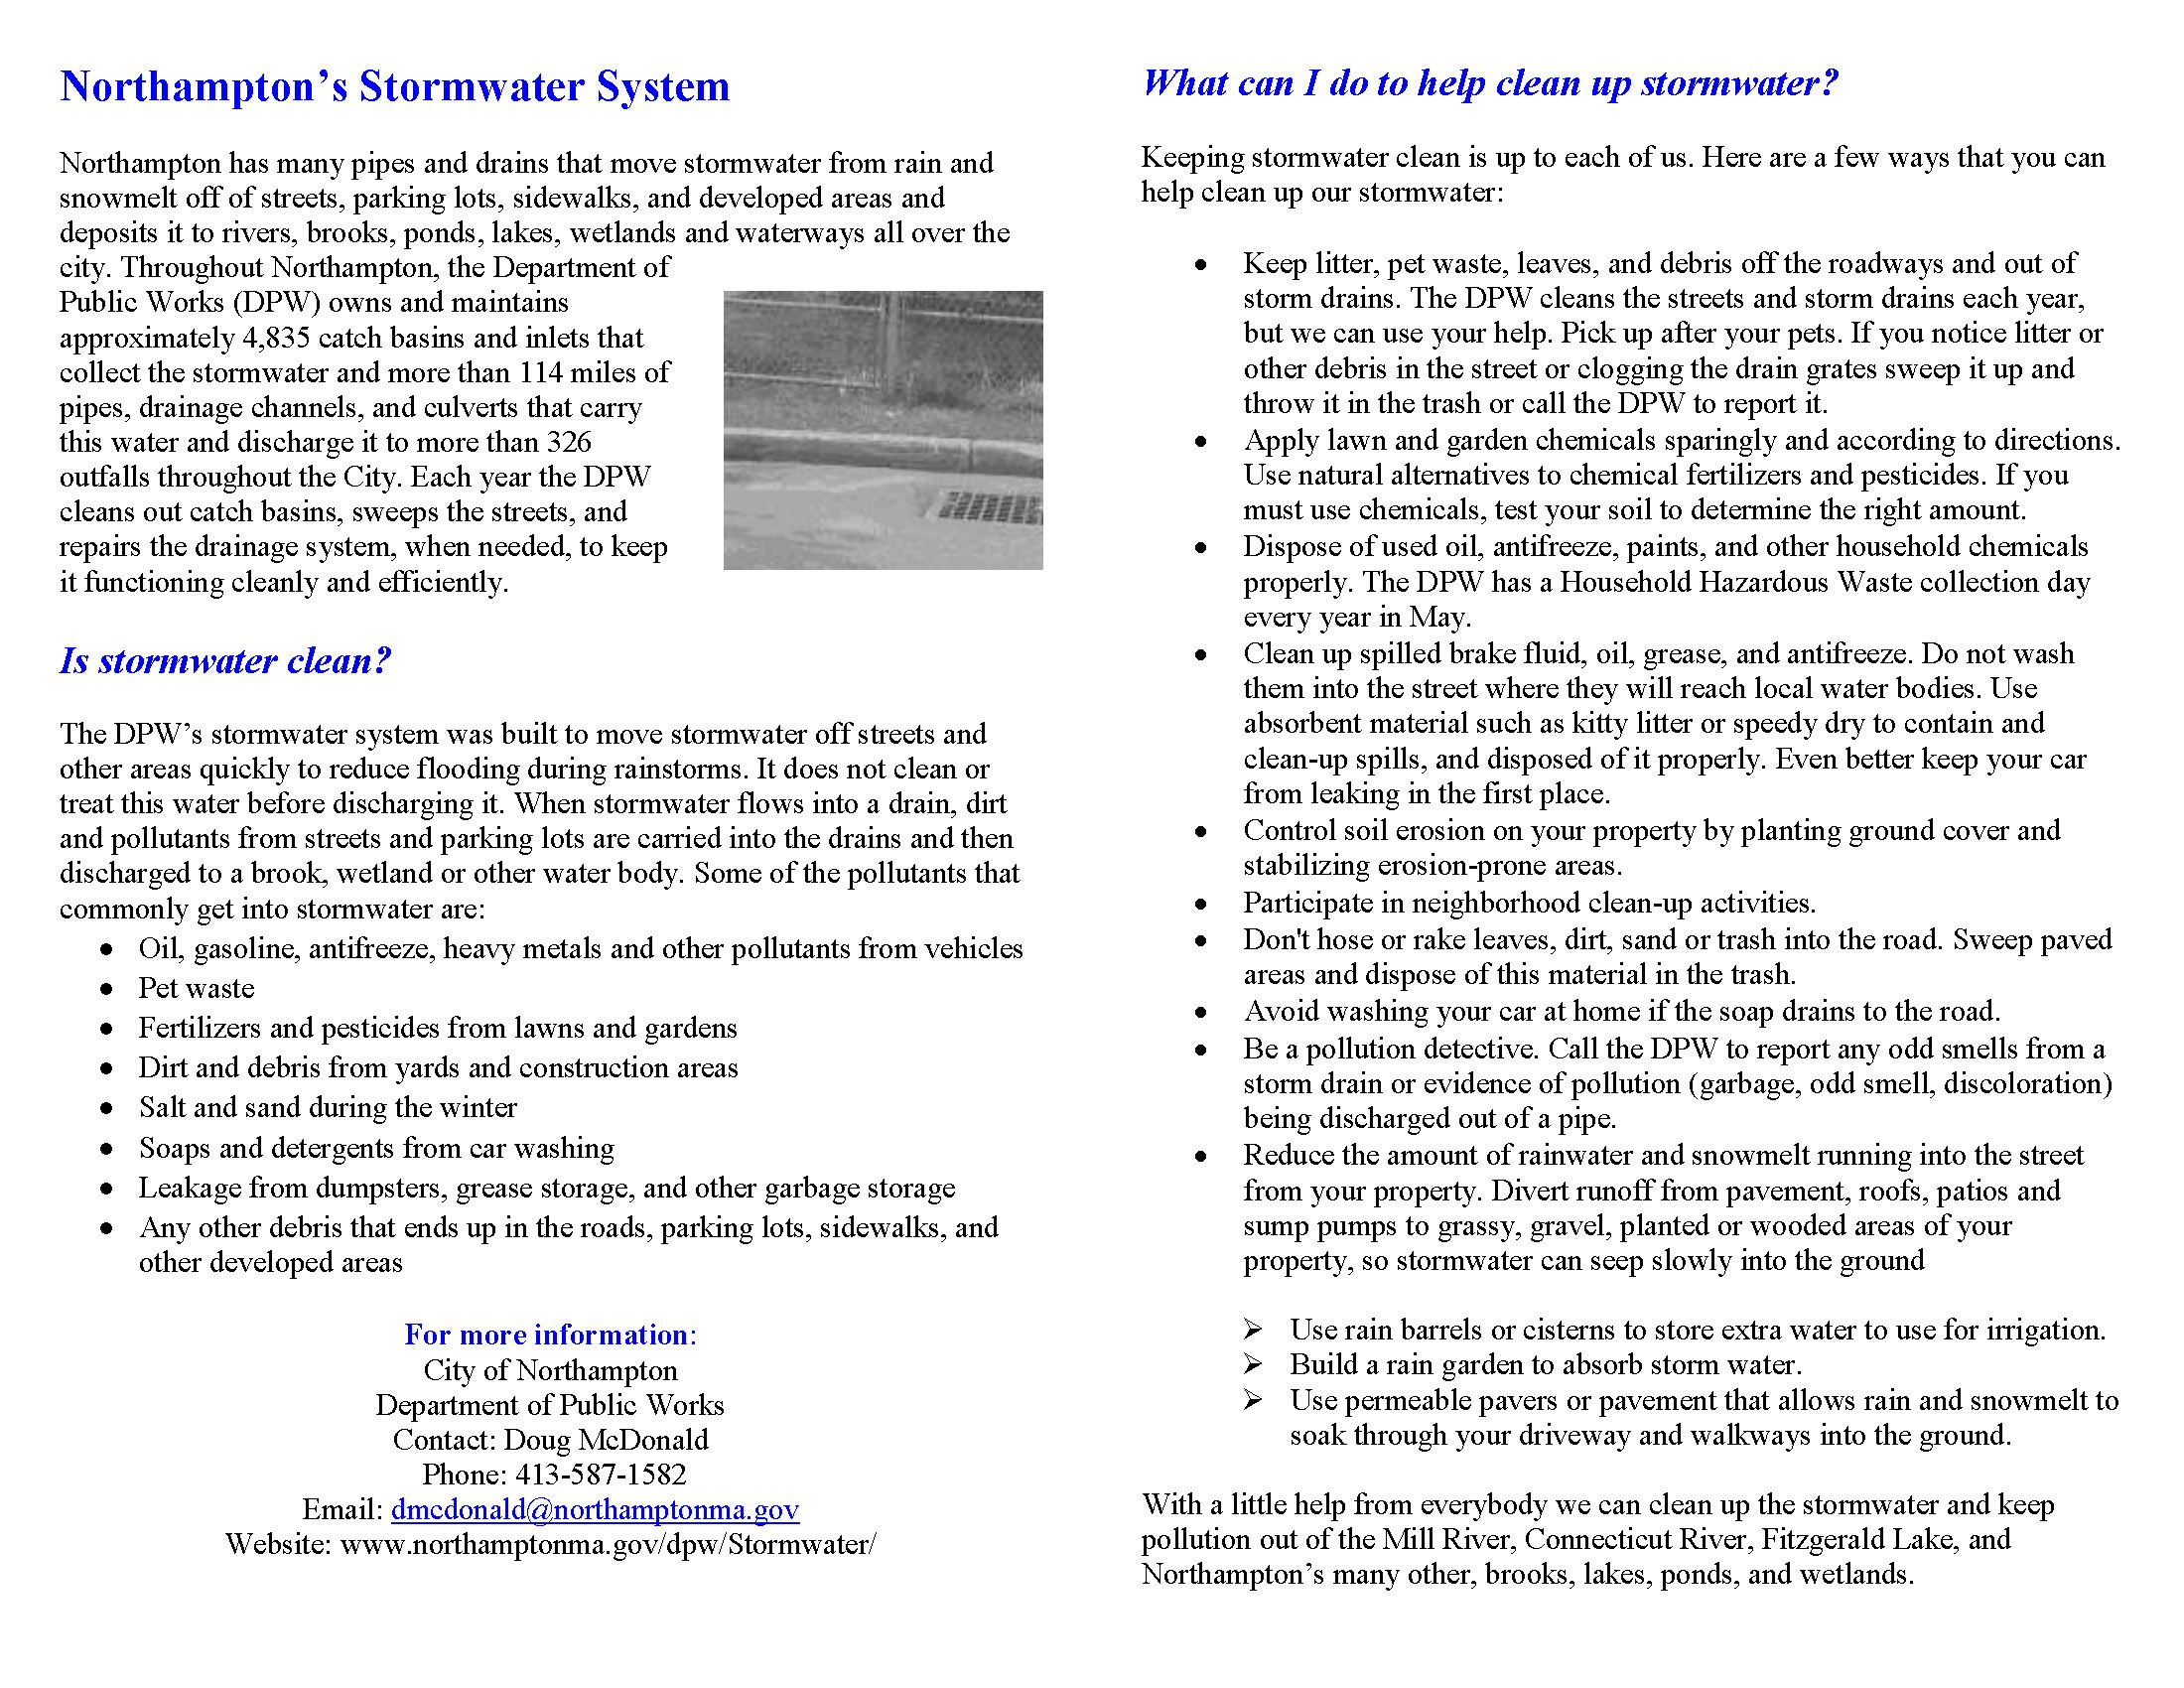 Image of 2013 Stormwater Fact Sheet Opens in new window